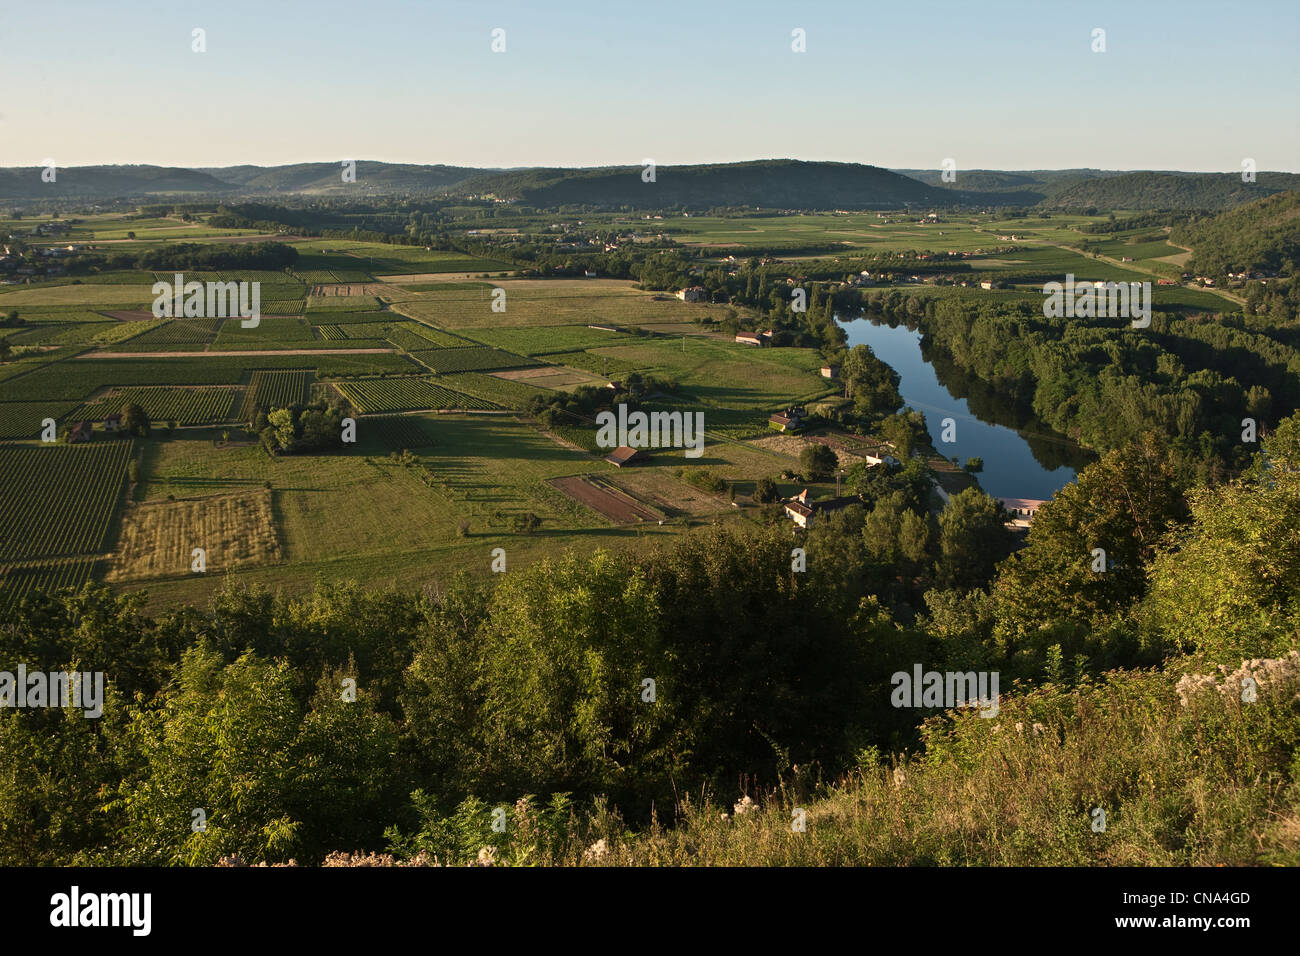 France, Lot, Belay, view over a bend in the Lot Valley in the AOC Cahors - Stock Image